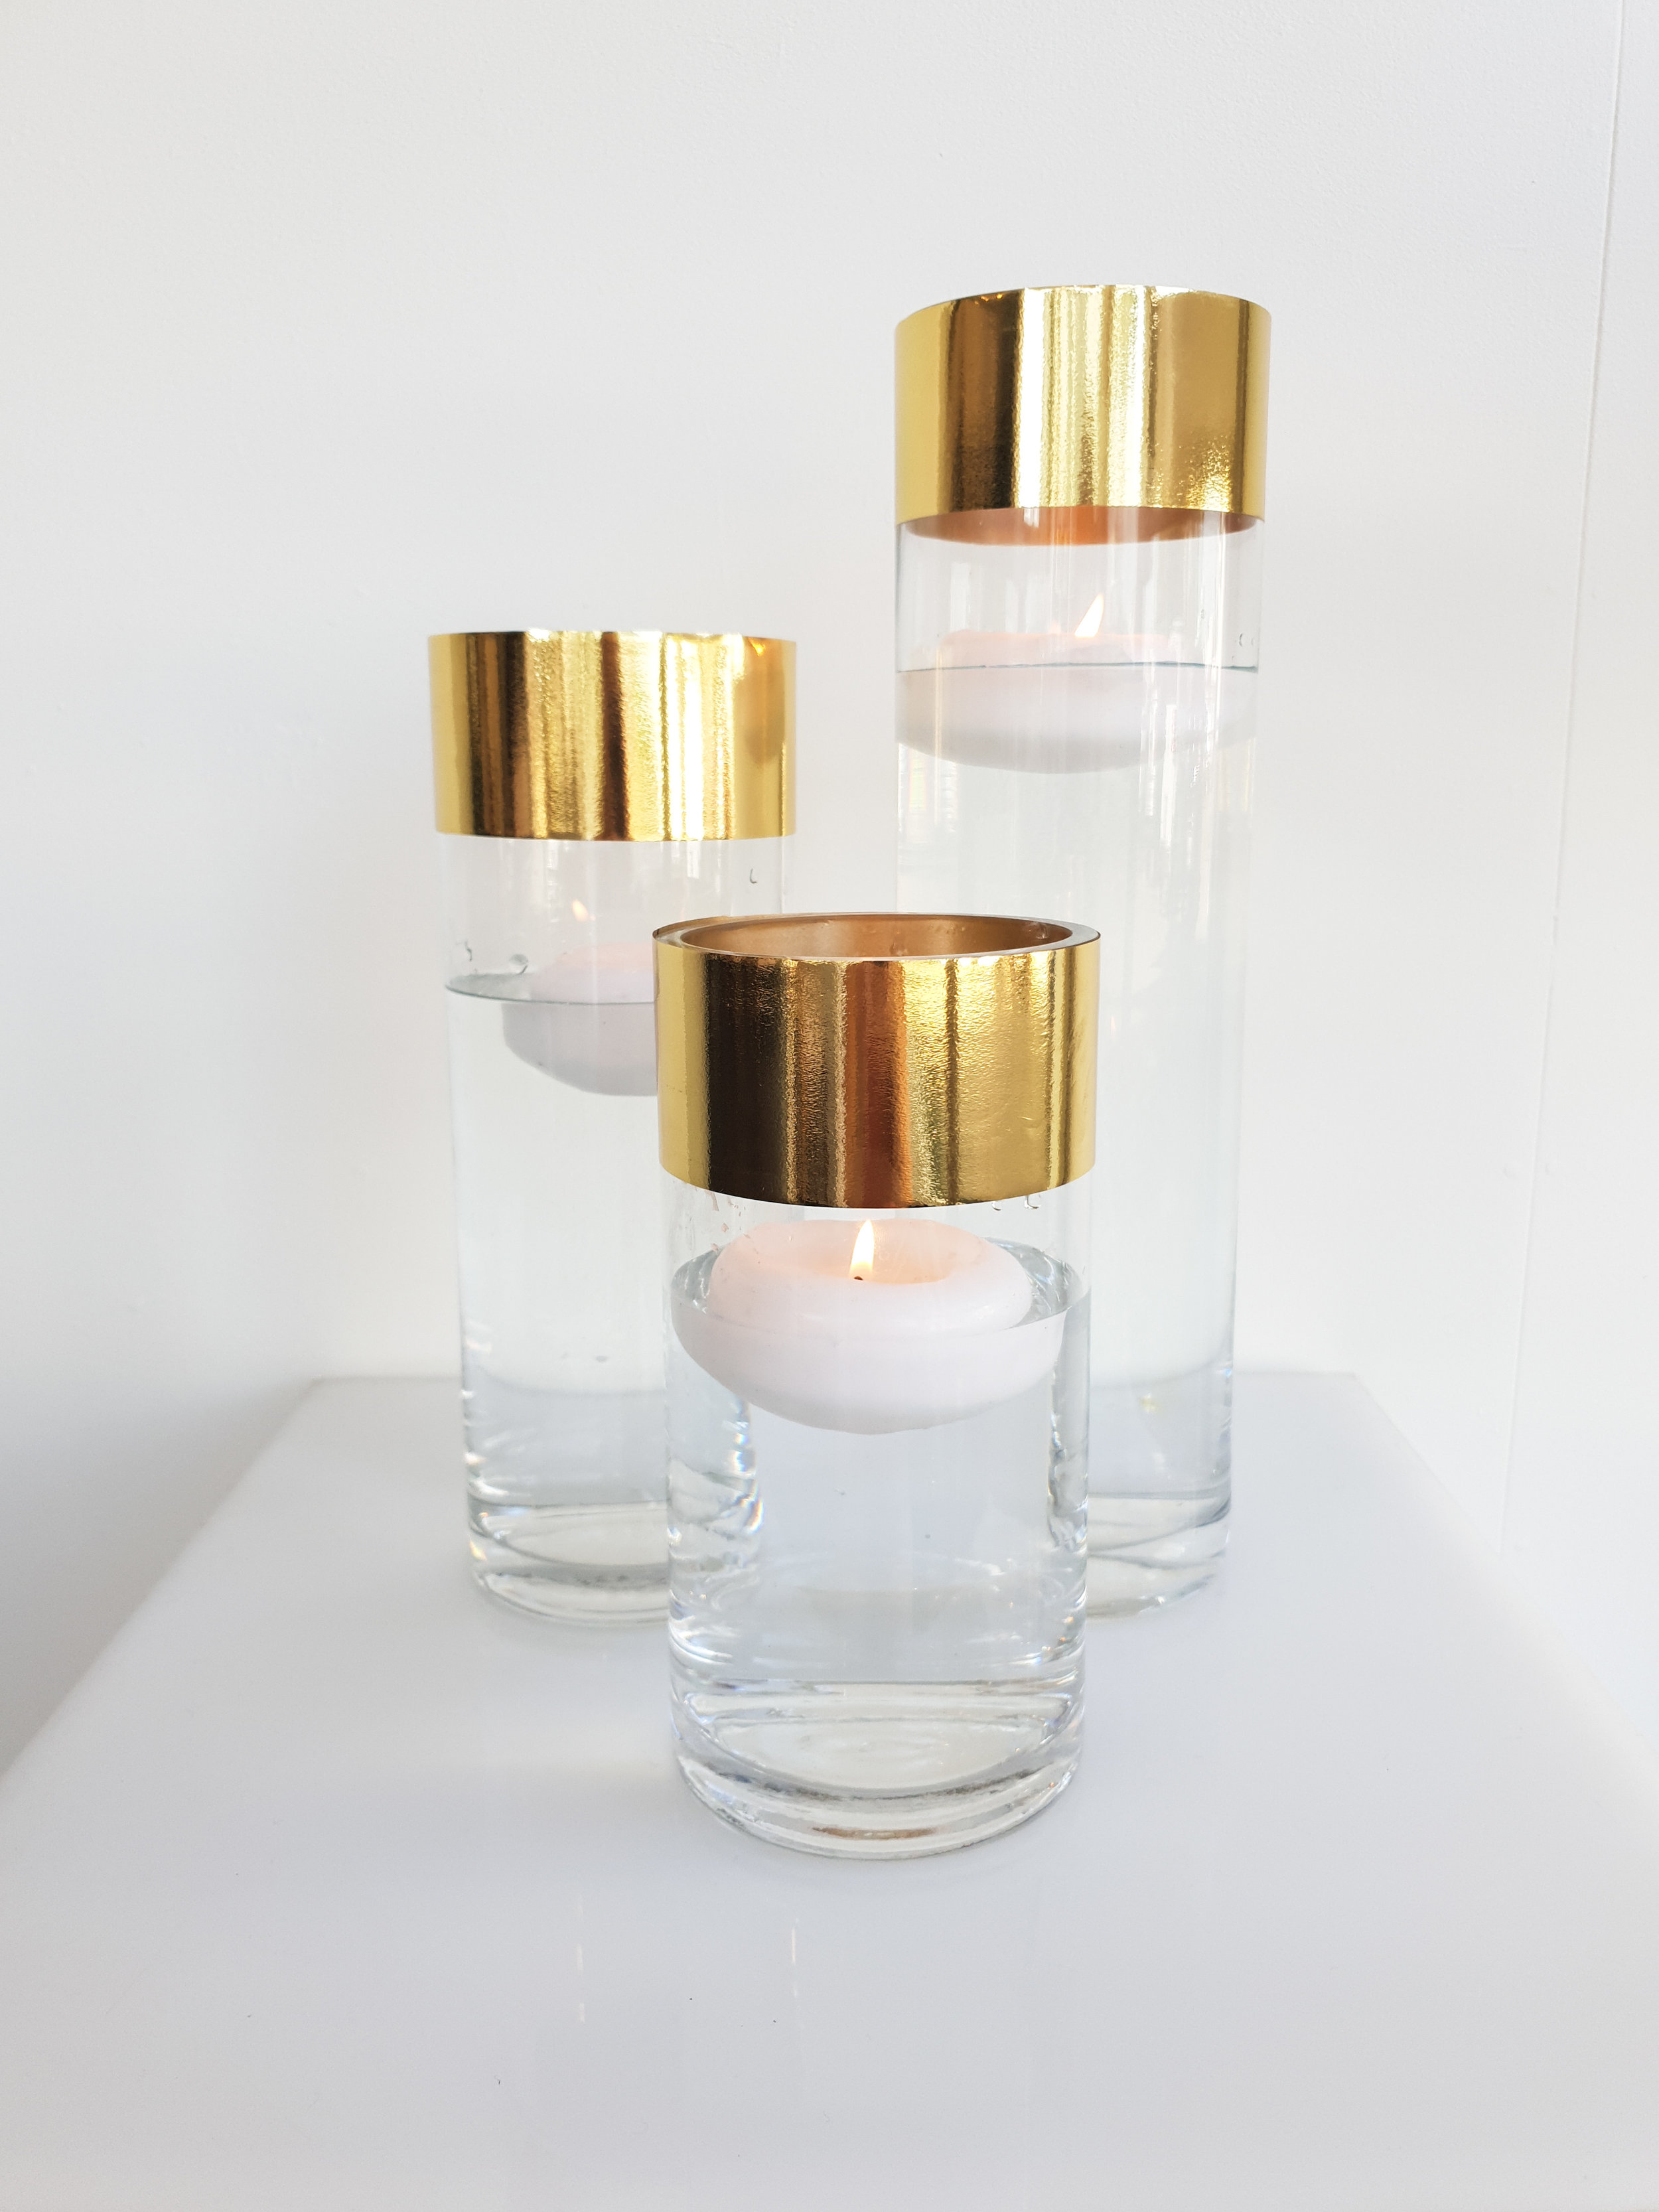 GOLD EDGE GLASS CYLINDER VASE WITH FLOATING CANDLE 20 CM H $8+GST 25 CM H $8+GST 30 CM H $10+GST 40 CM H $12+GST